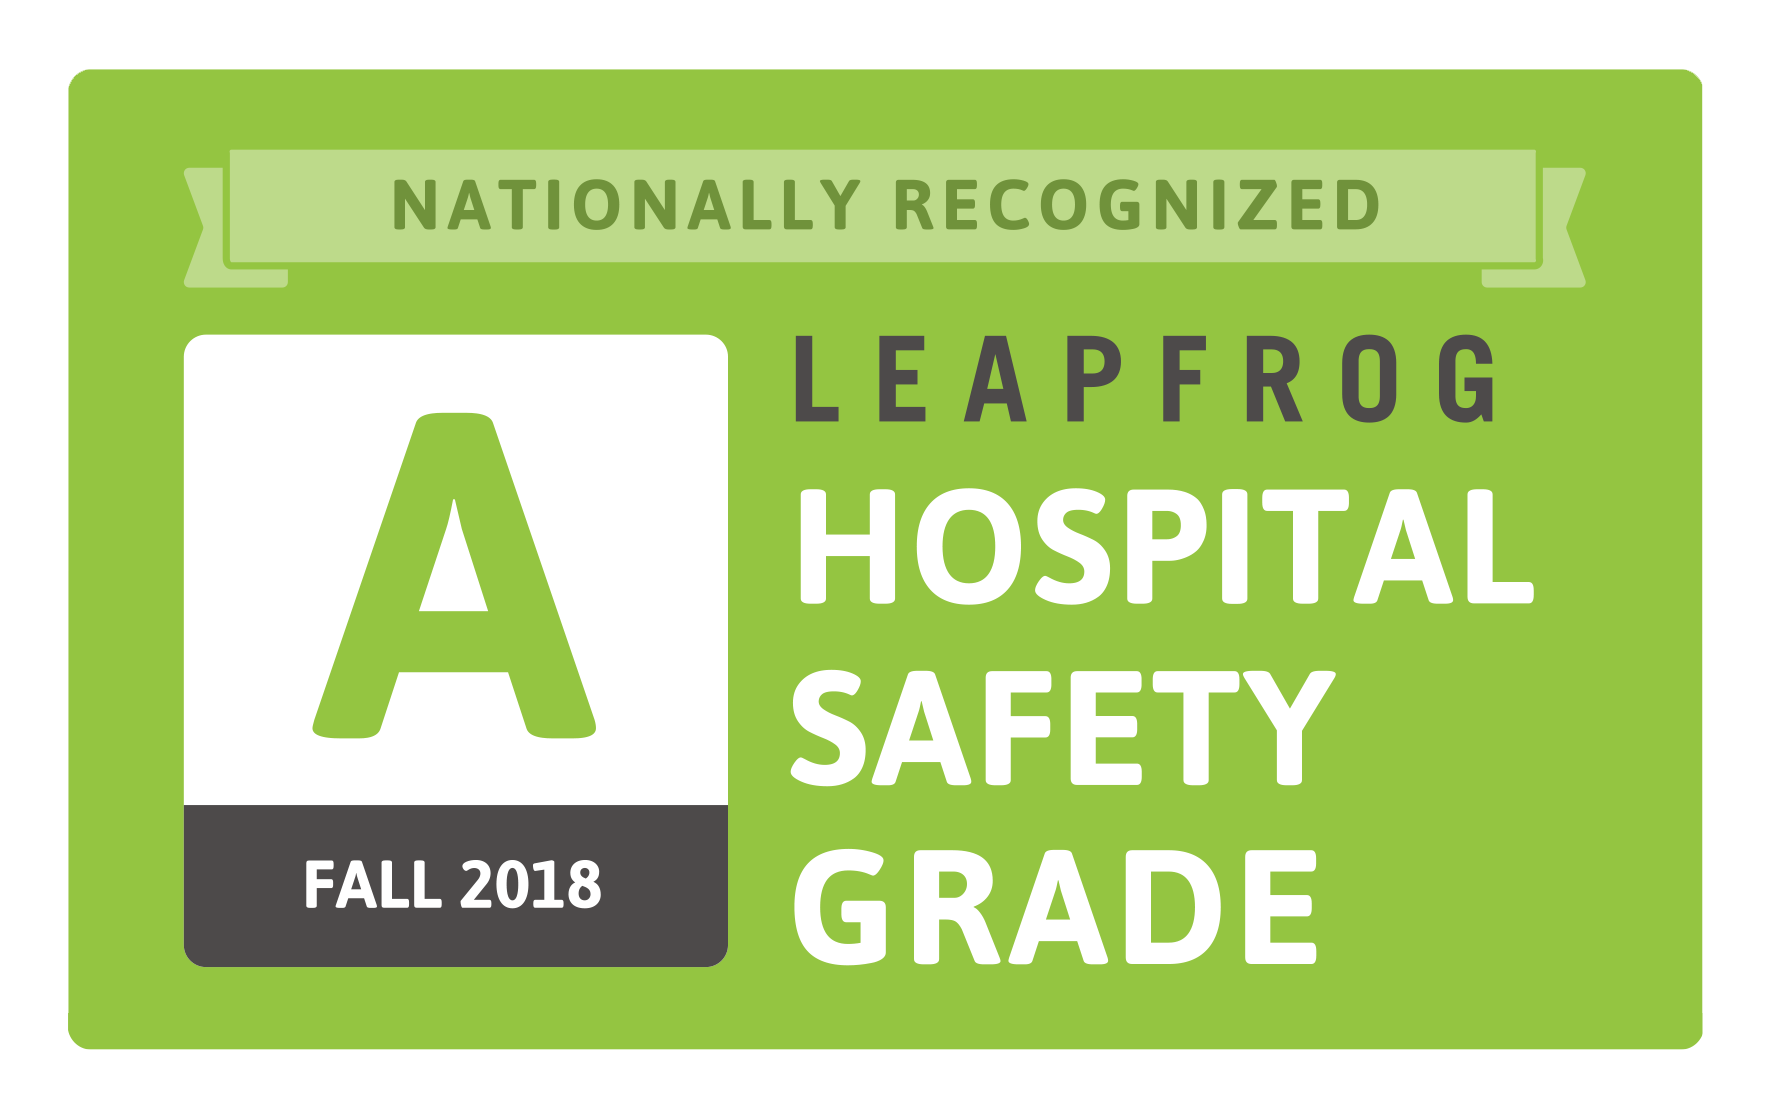 Nationally Recognized Leapfrog Hospital Safety Grade